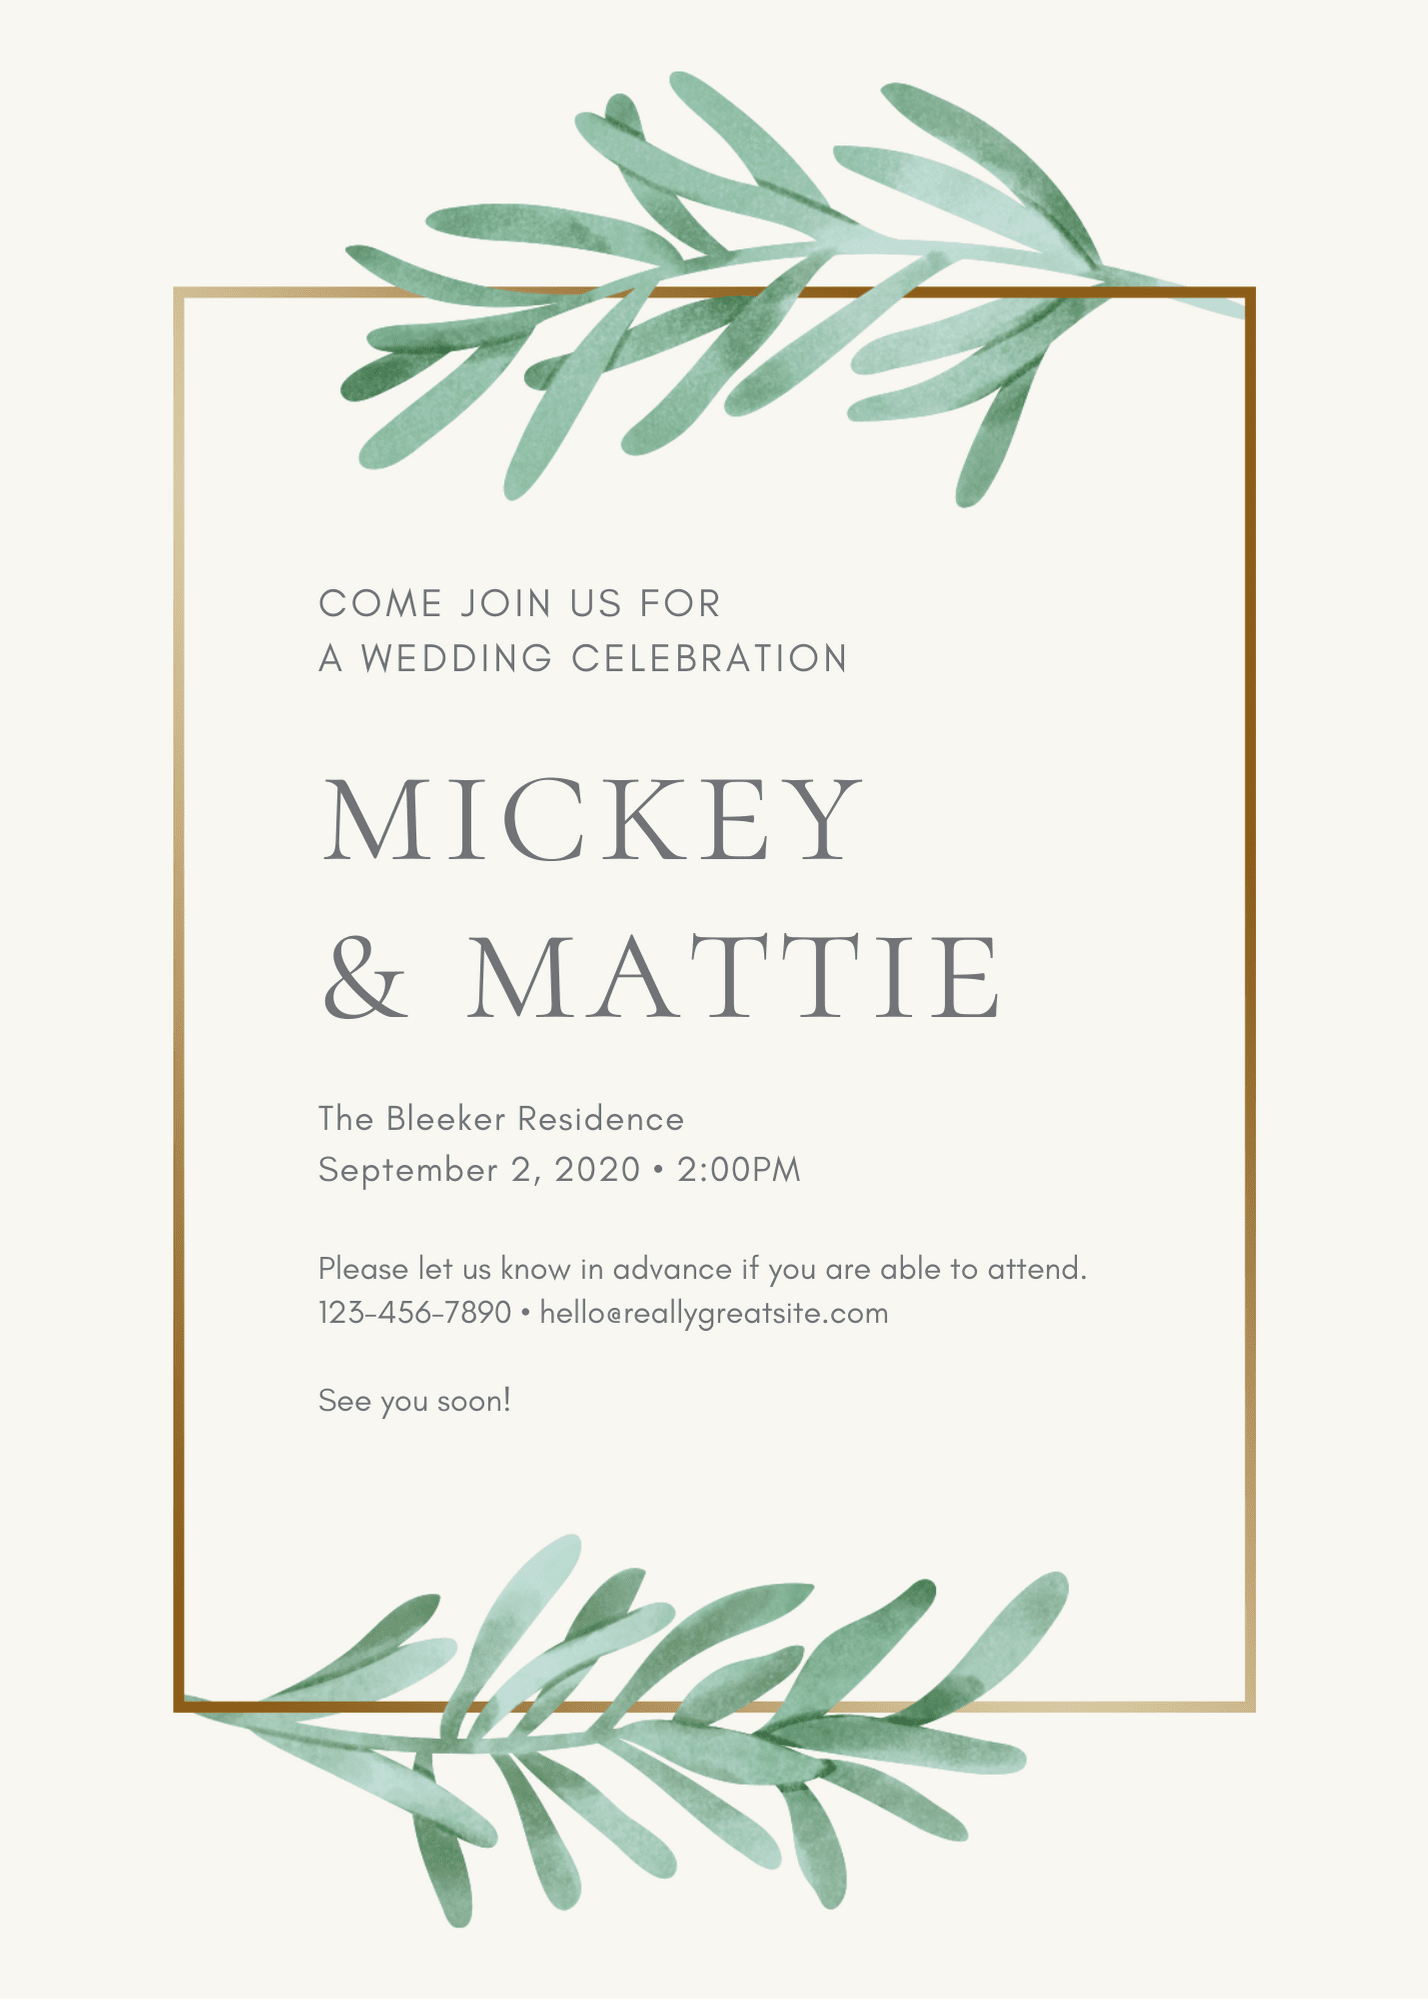 How to design a wedding invitation from scratch